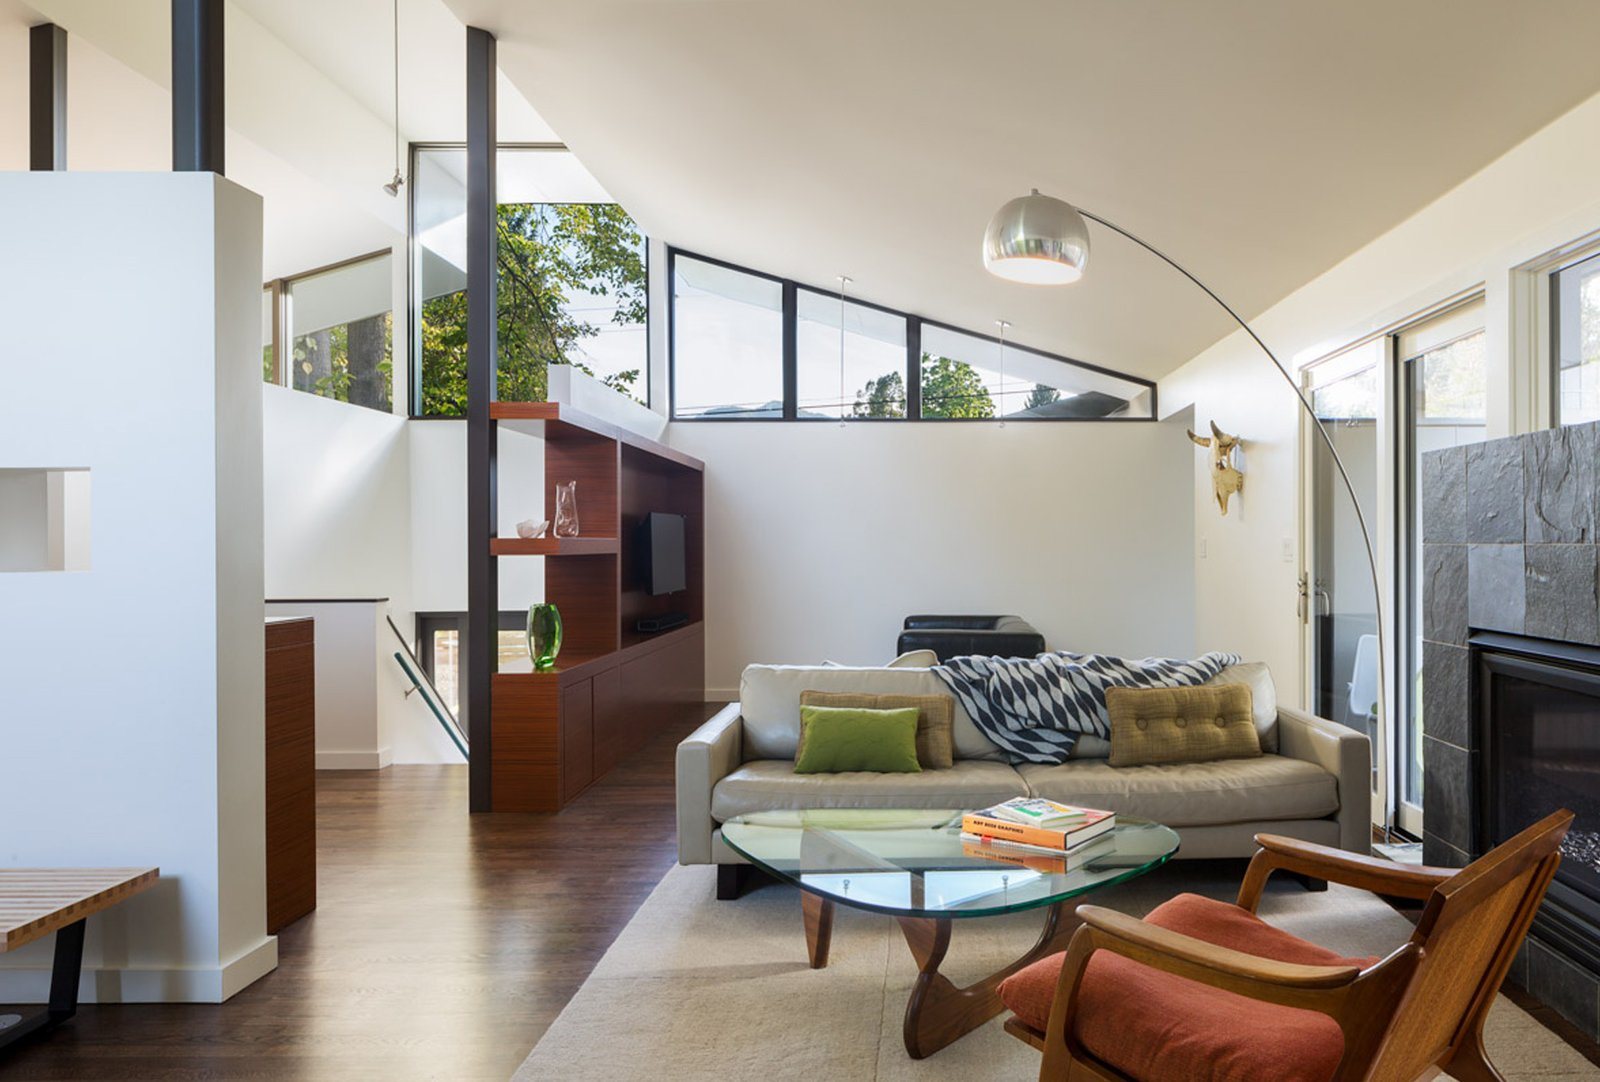 The living room was re-oriented to take advantage of indoor-outdoor living with large sliders and an indoor-outdoor fireplace. The space is now a well-used extension of the living area.  Tagged: Living Room, Chair, Sofa, and Coffee Tables.  Mid Century Re-Modern by HMHAI